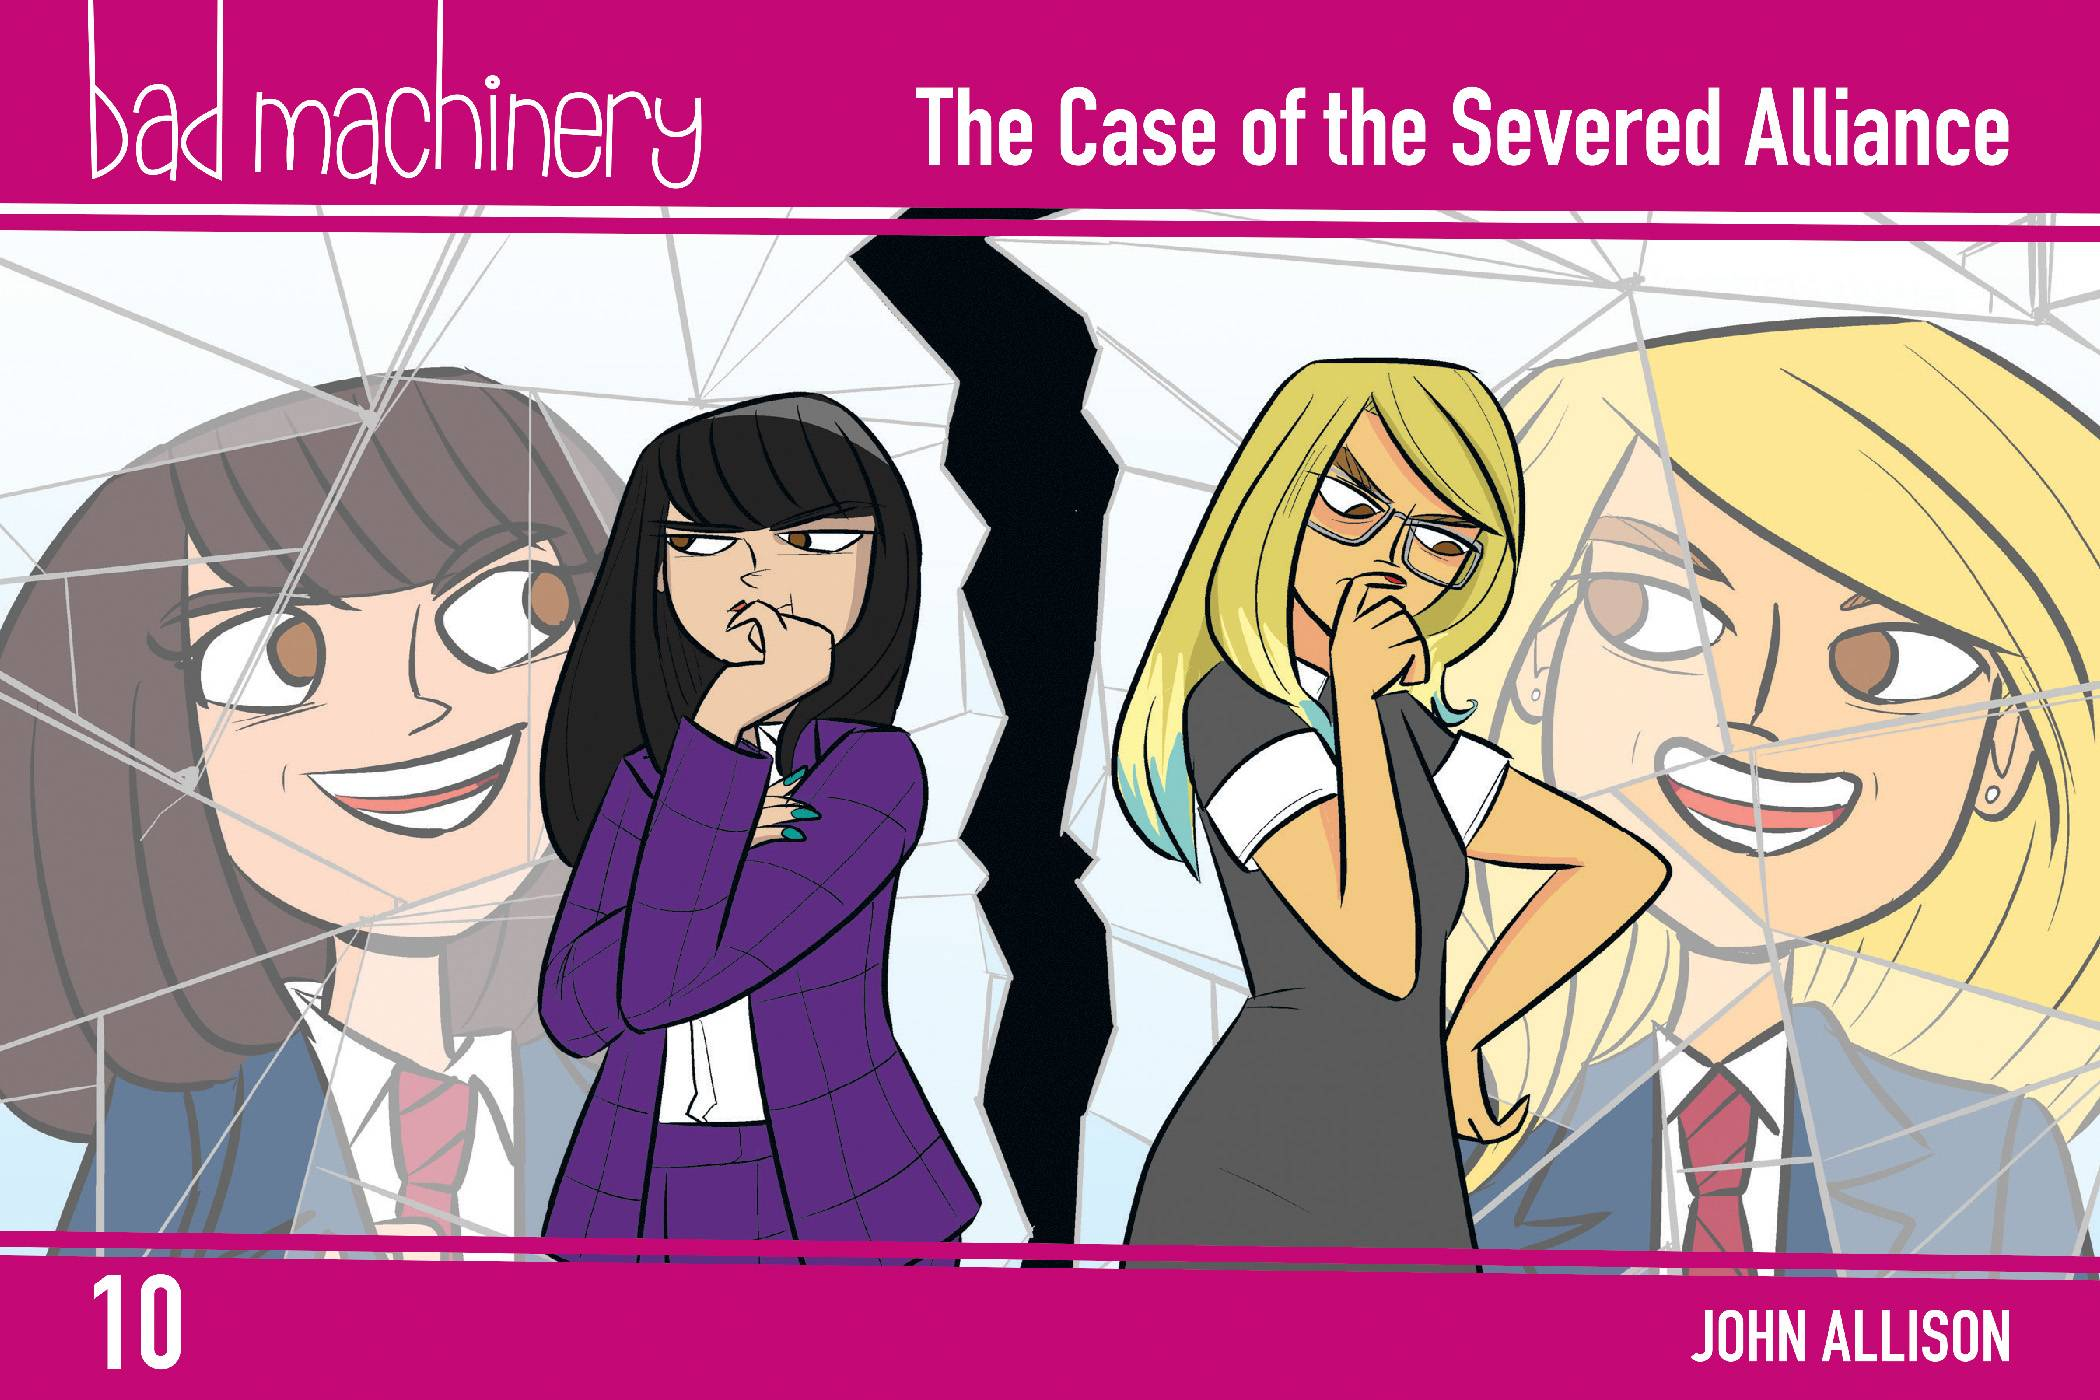 BAD MACHINERY POCKET ED GN VOL 10 CASE OF THE SEVERED ALLIAN PRE-ORDER